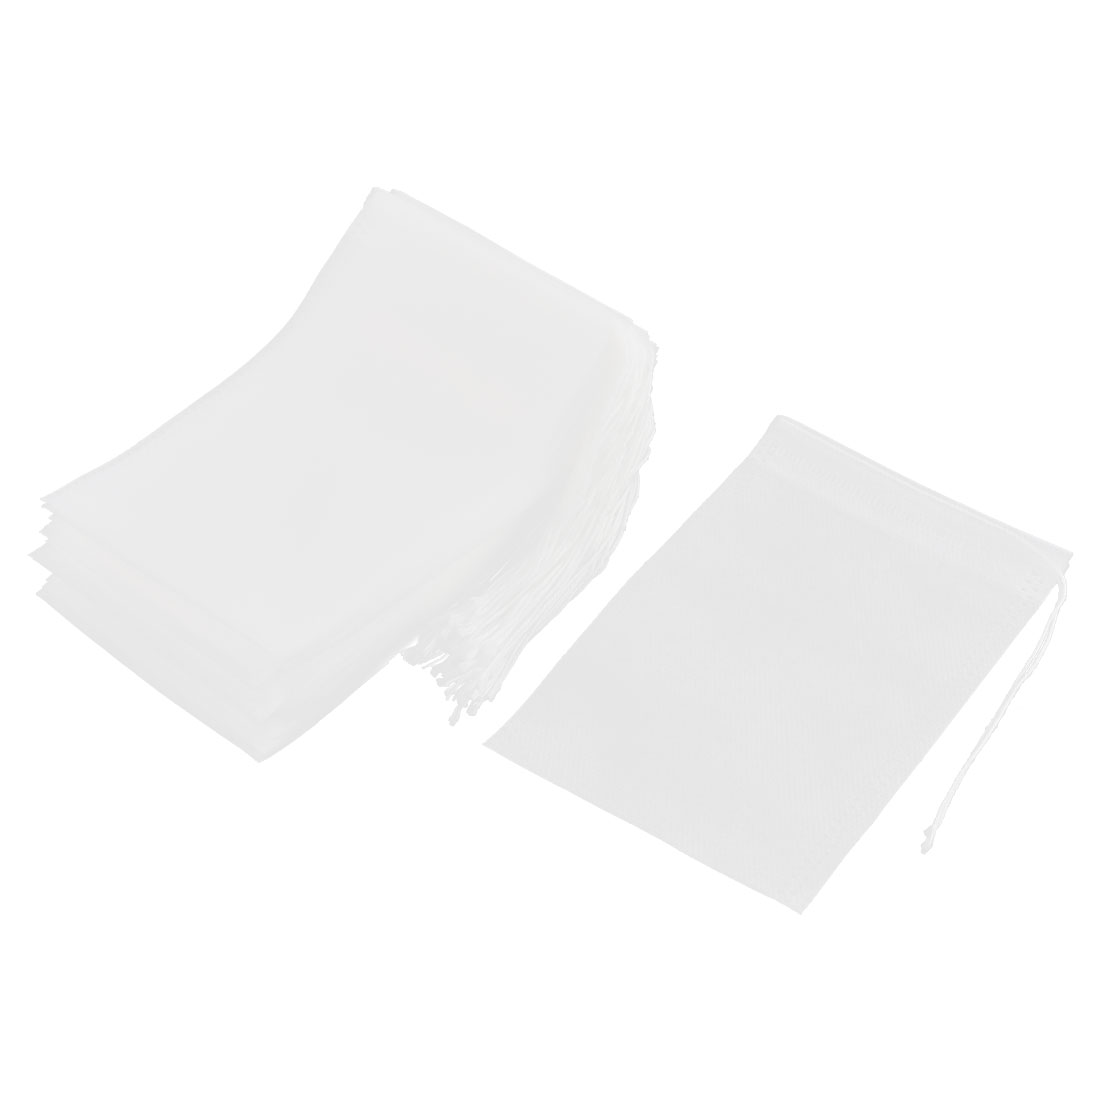 Household Non-woven Fabric Empty Herbal Powder Spice Tea Filter Bag White 15cm x 10cm 50 Pcs